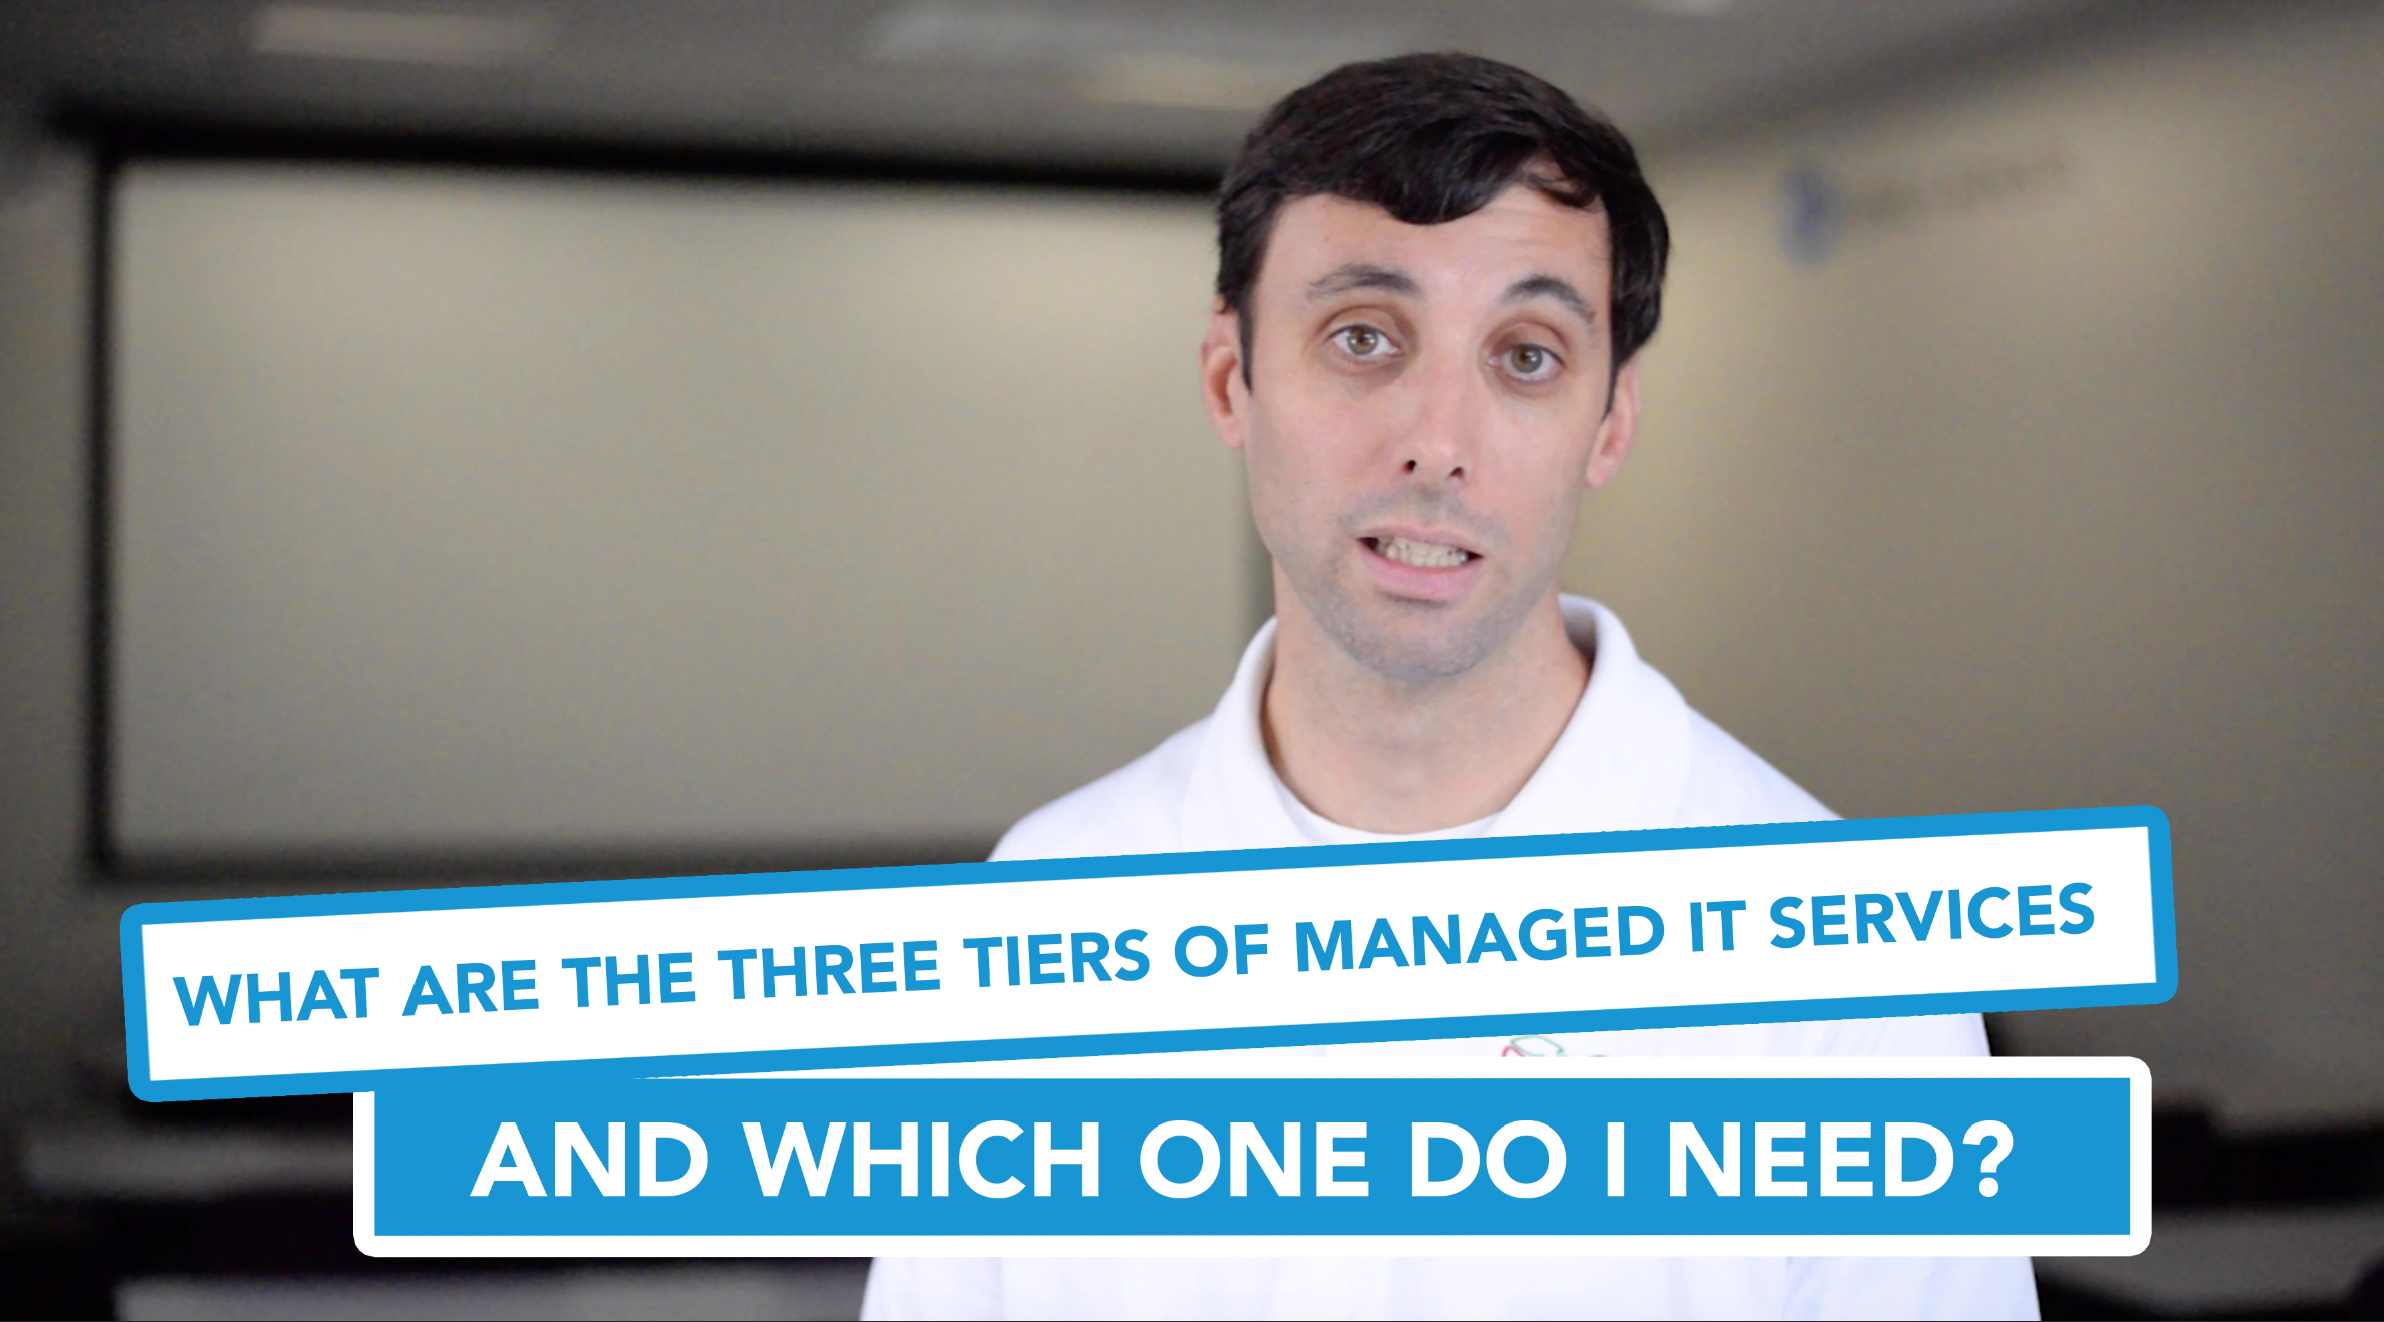 Preview 1- What Are the Three Tiers of Managed IT Services, and Which One Do I Need